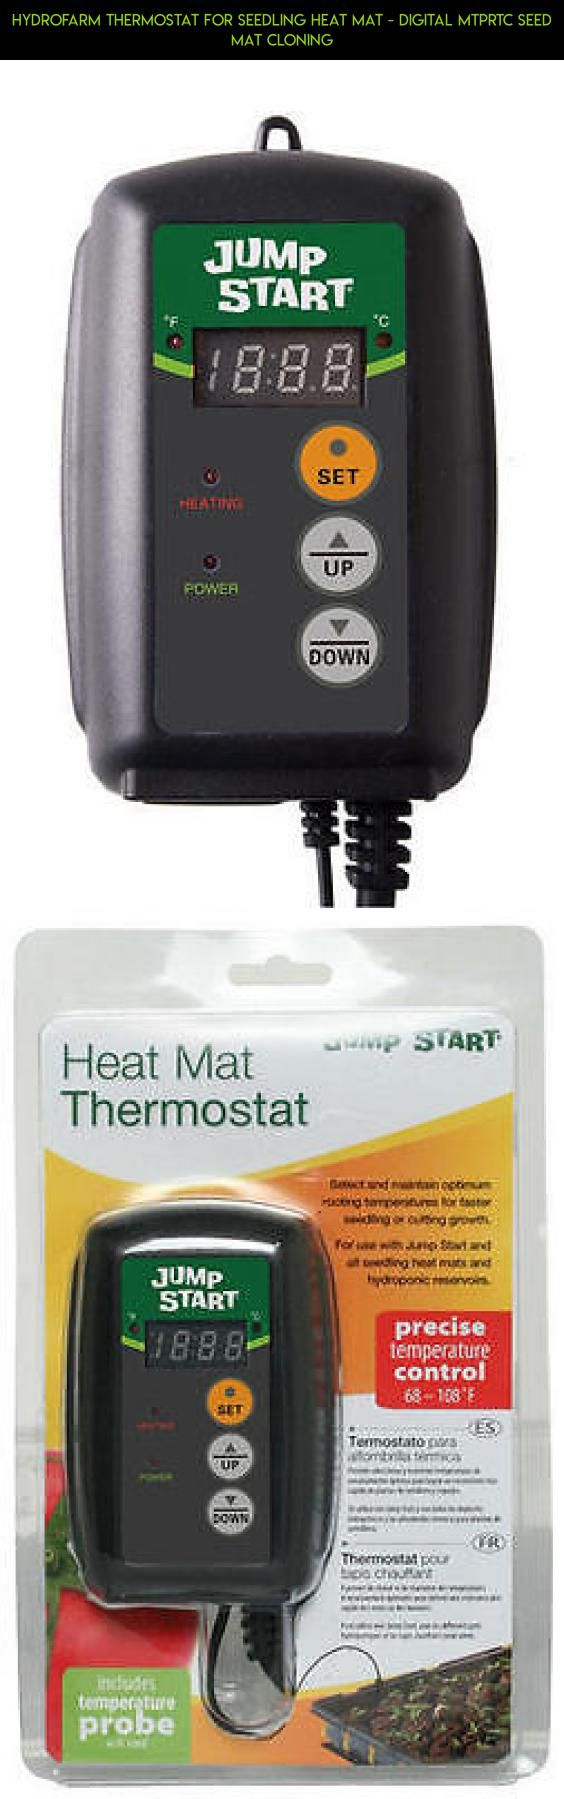 Hydrofarm Thermostat for Seedling Heat Mat - Digital MTPRTC Seed Mat Cloning #for #drone #seedlings #plans #mats #fpv #heating #technology #kit #camera #products #shopping #racing #parts #tech #gadgets